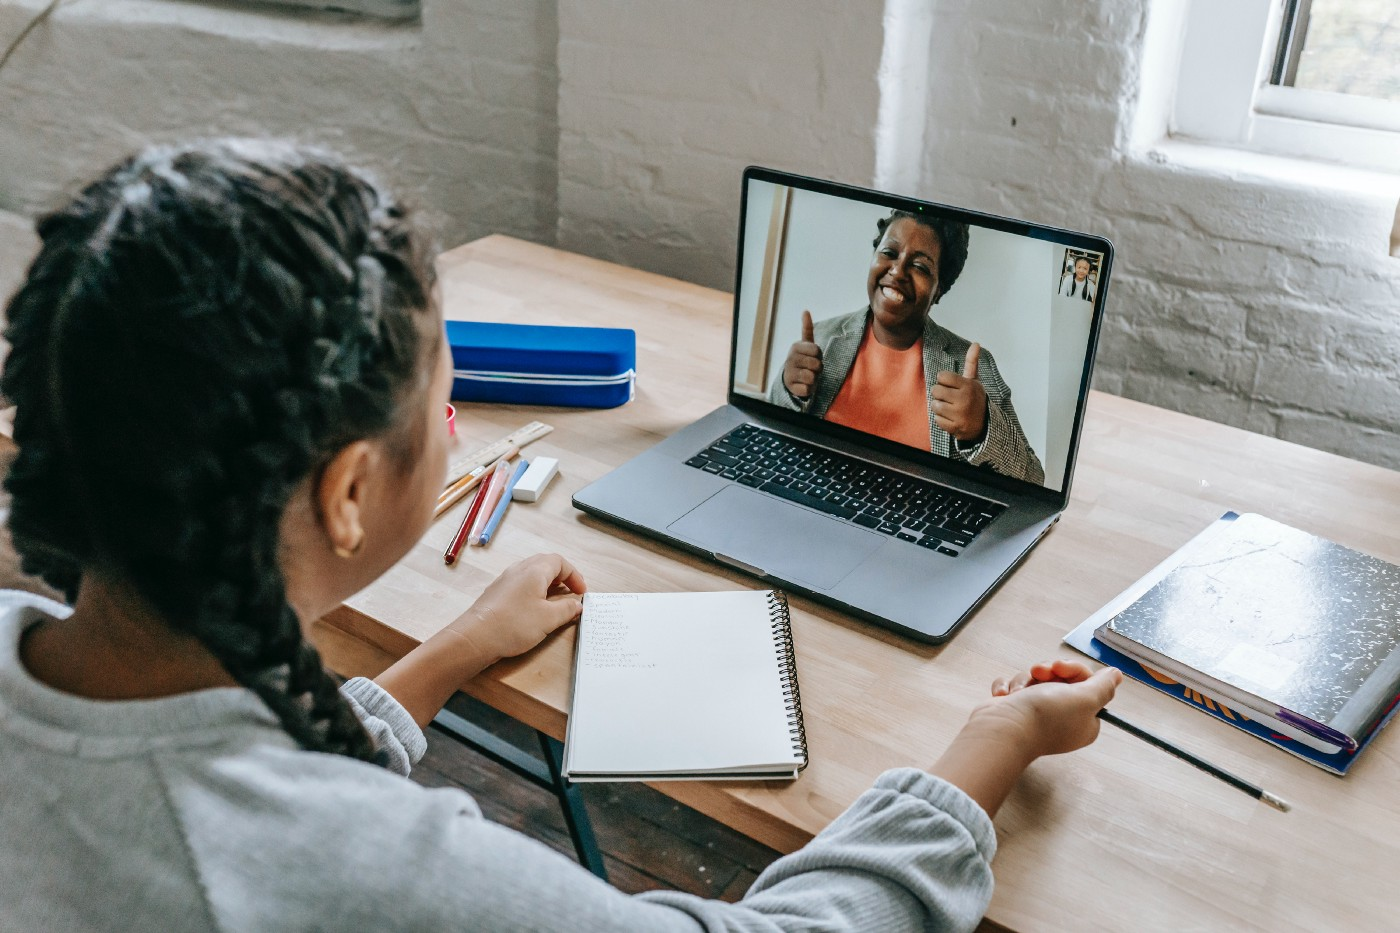 video call image